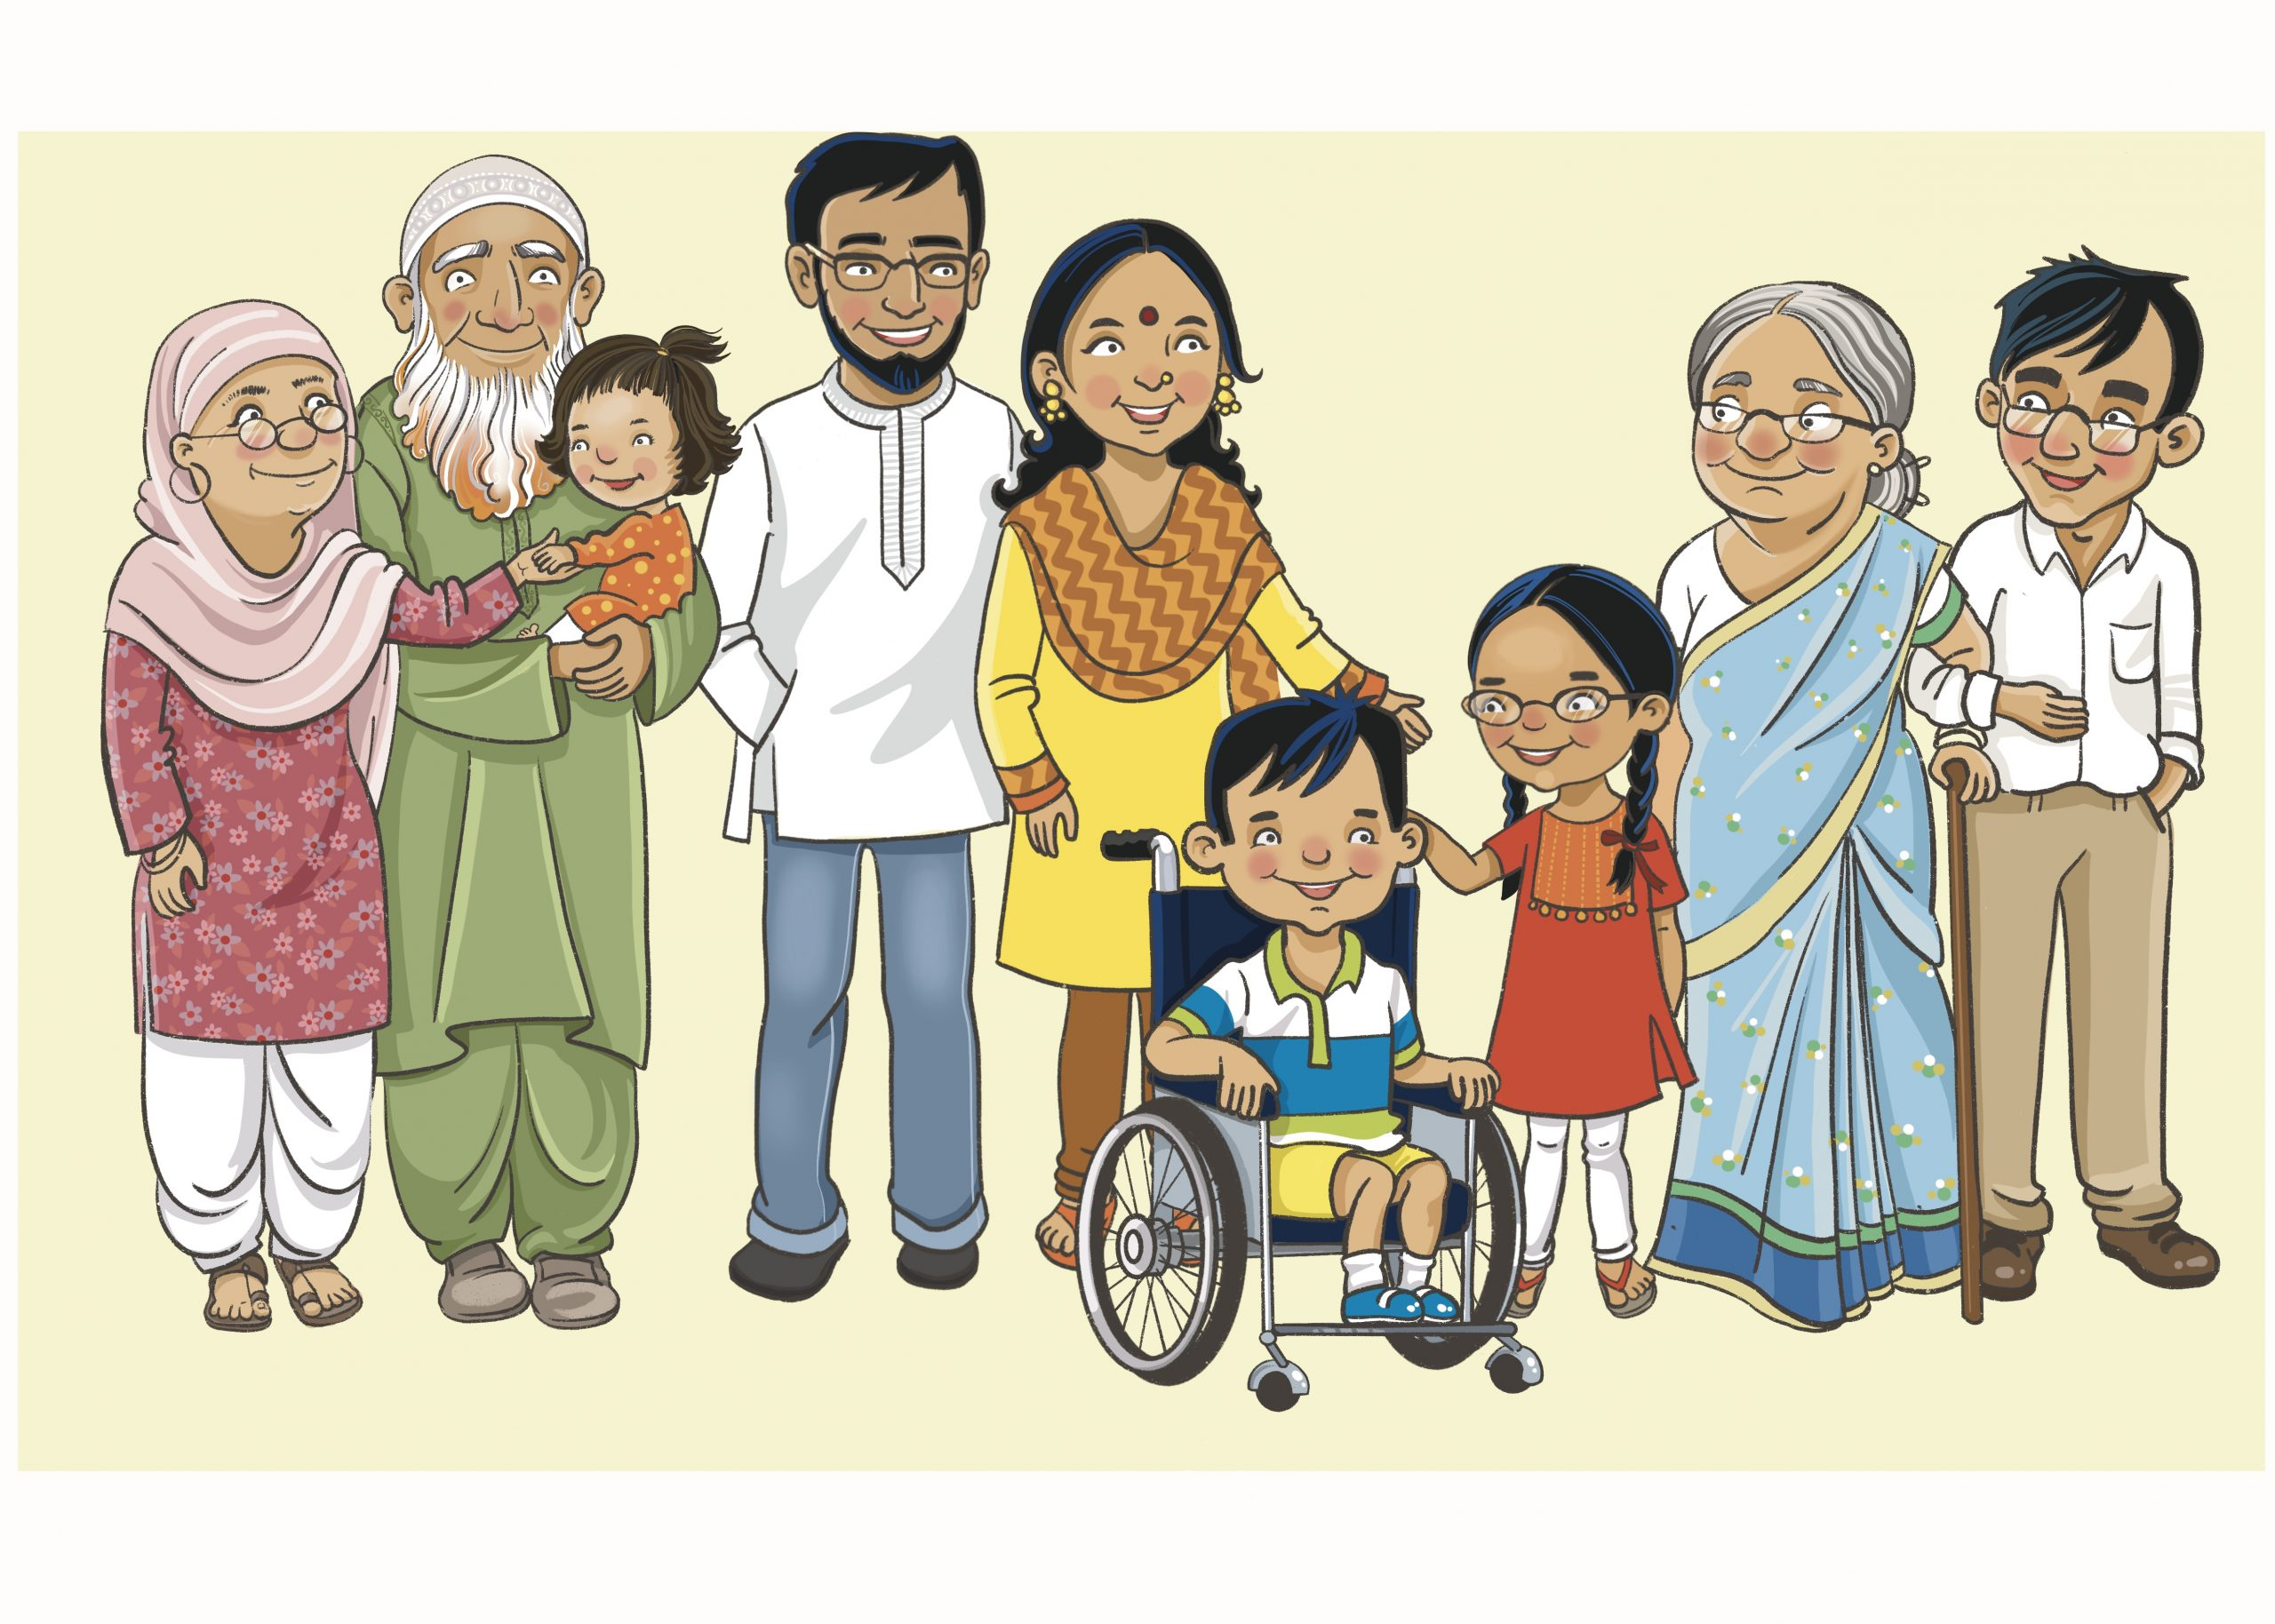 Indian family with parents and three children (one in a wheelchair), two sets of grandparents (one Muslim, one Hindu)